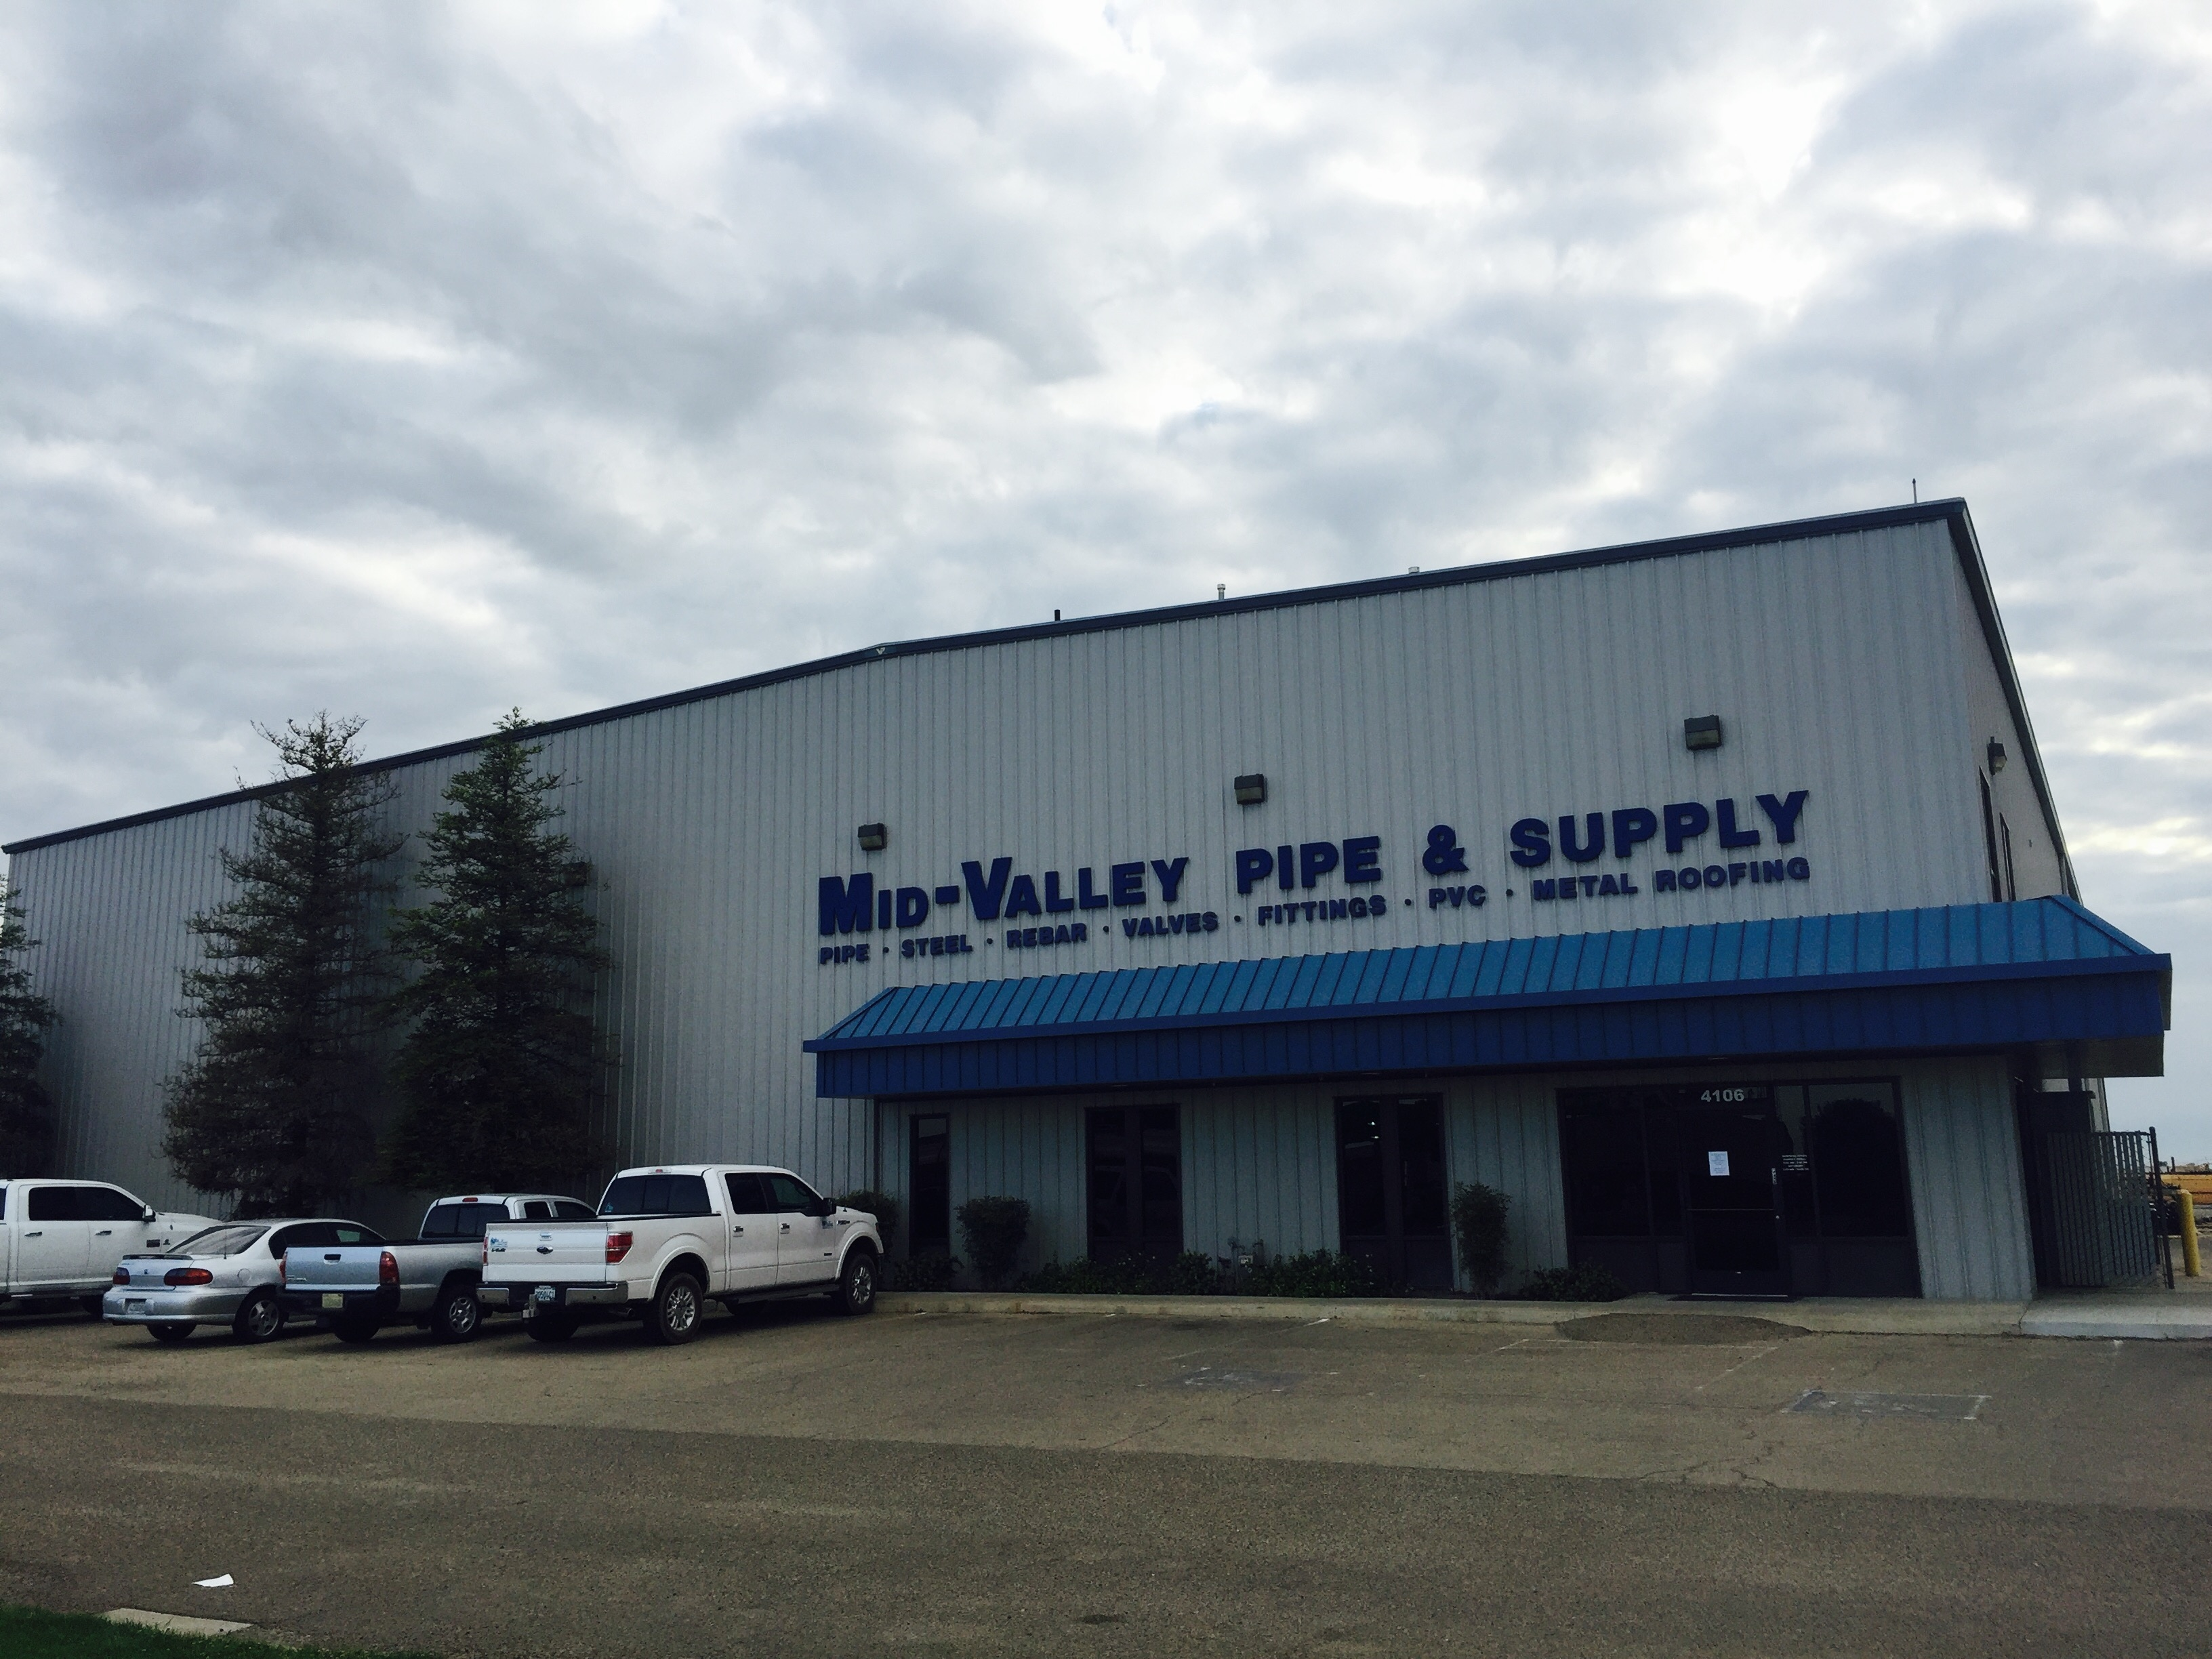 Mid-Valley Pipe & Supply image 11